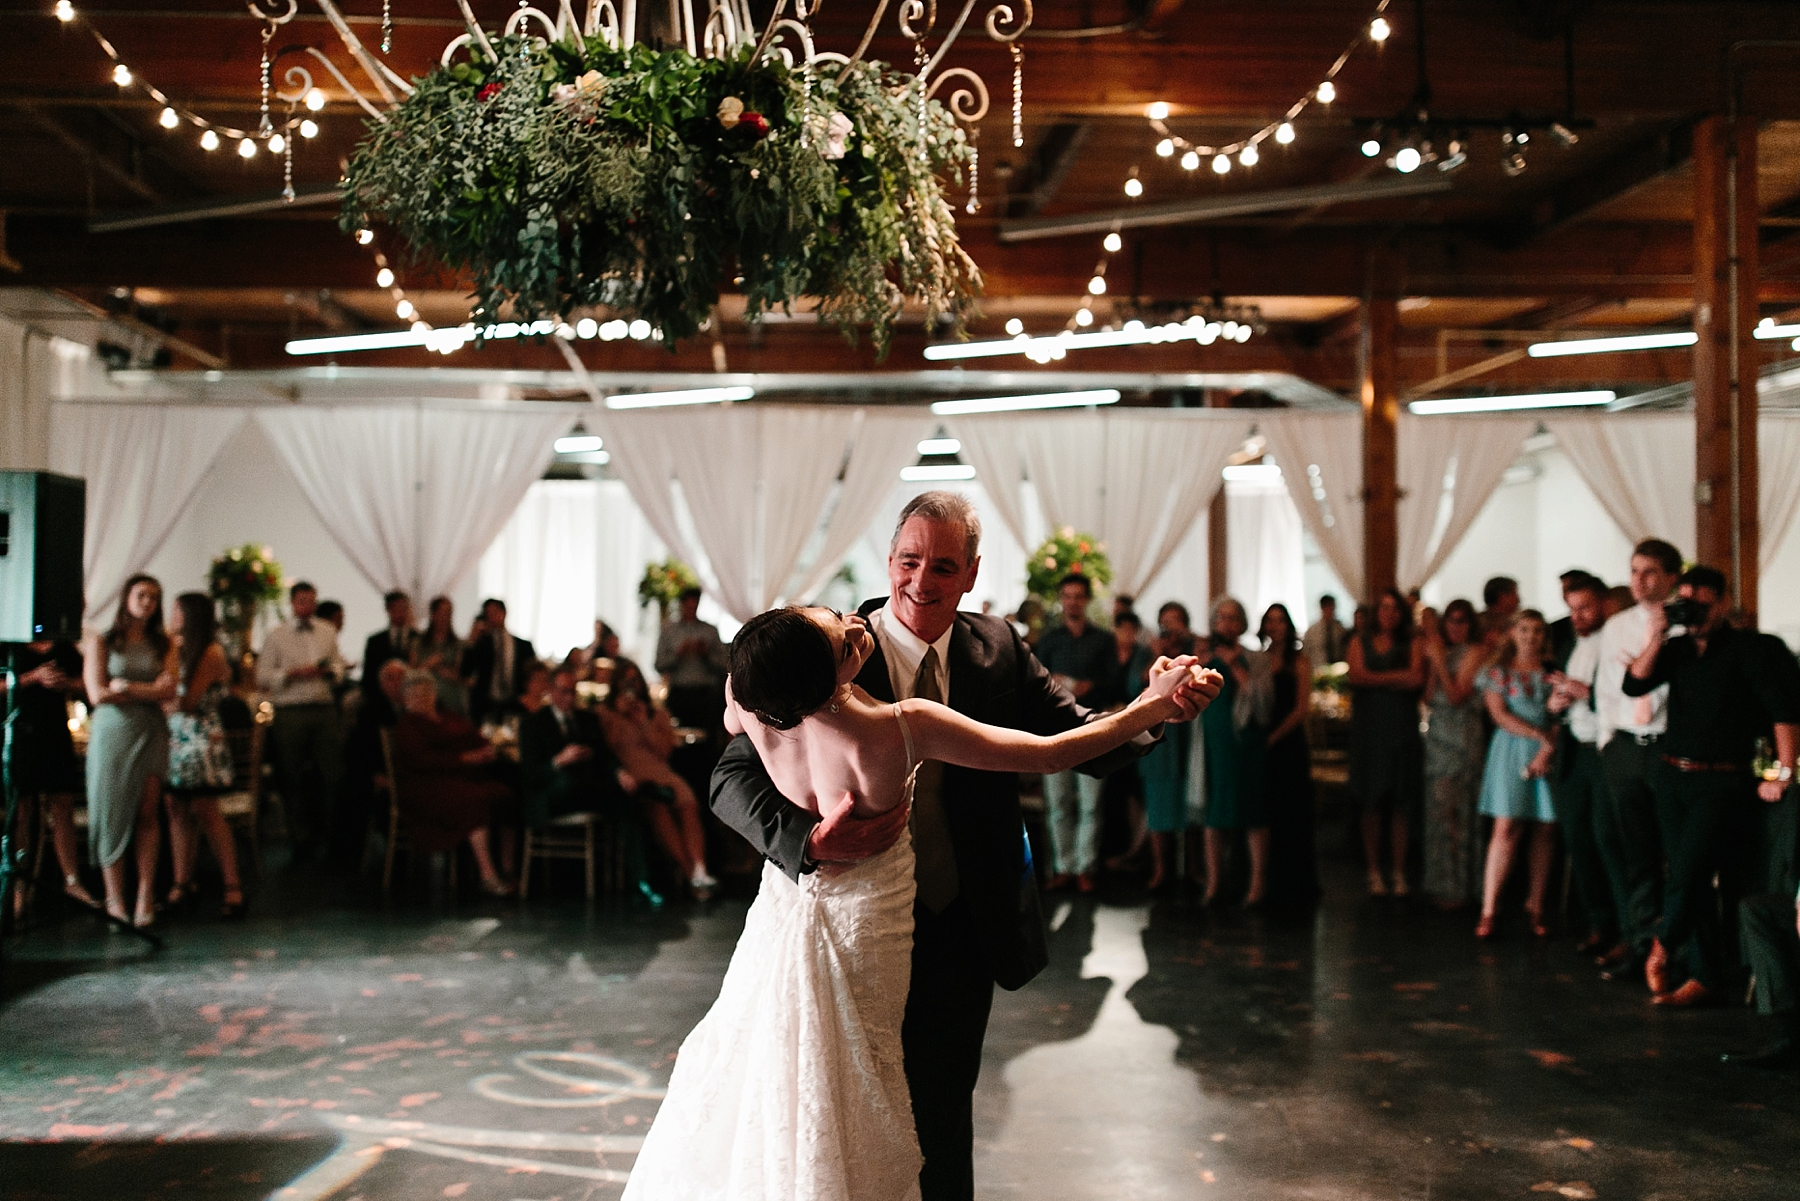 Emily + Caleb _ an elegant, intentional, industrial style wedding with navy + gold accents at 6500 in Dallas, TX by North Texas Wedding Photographer Rachel Meagan Photography _ 150